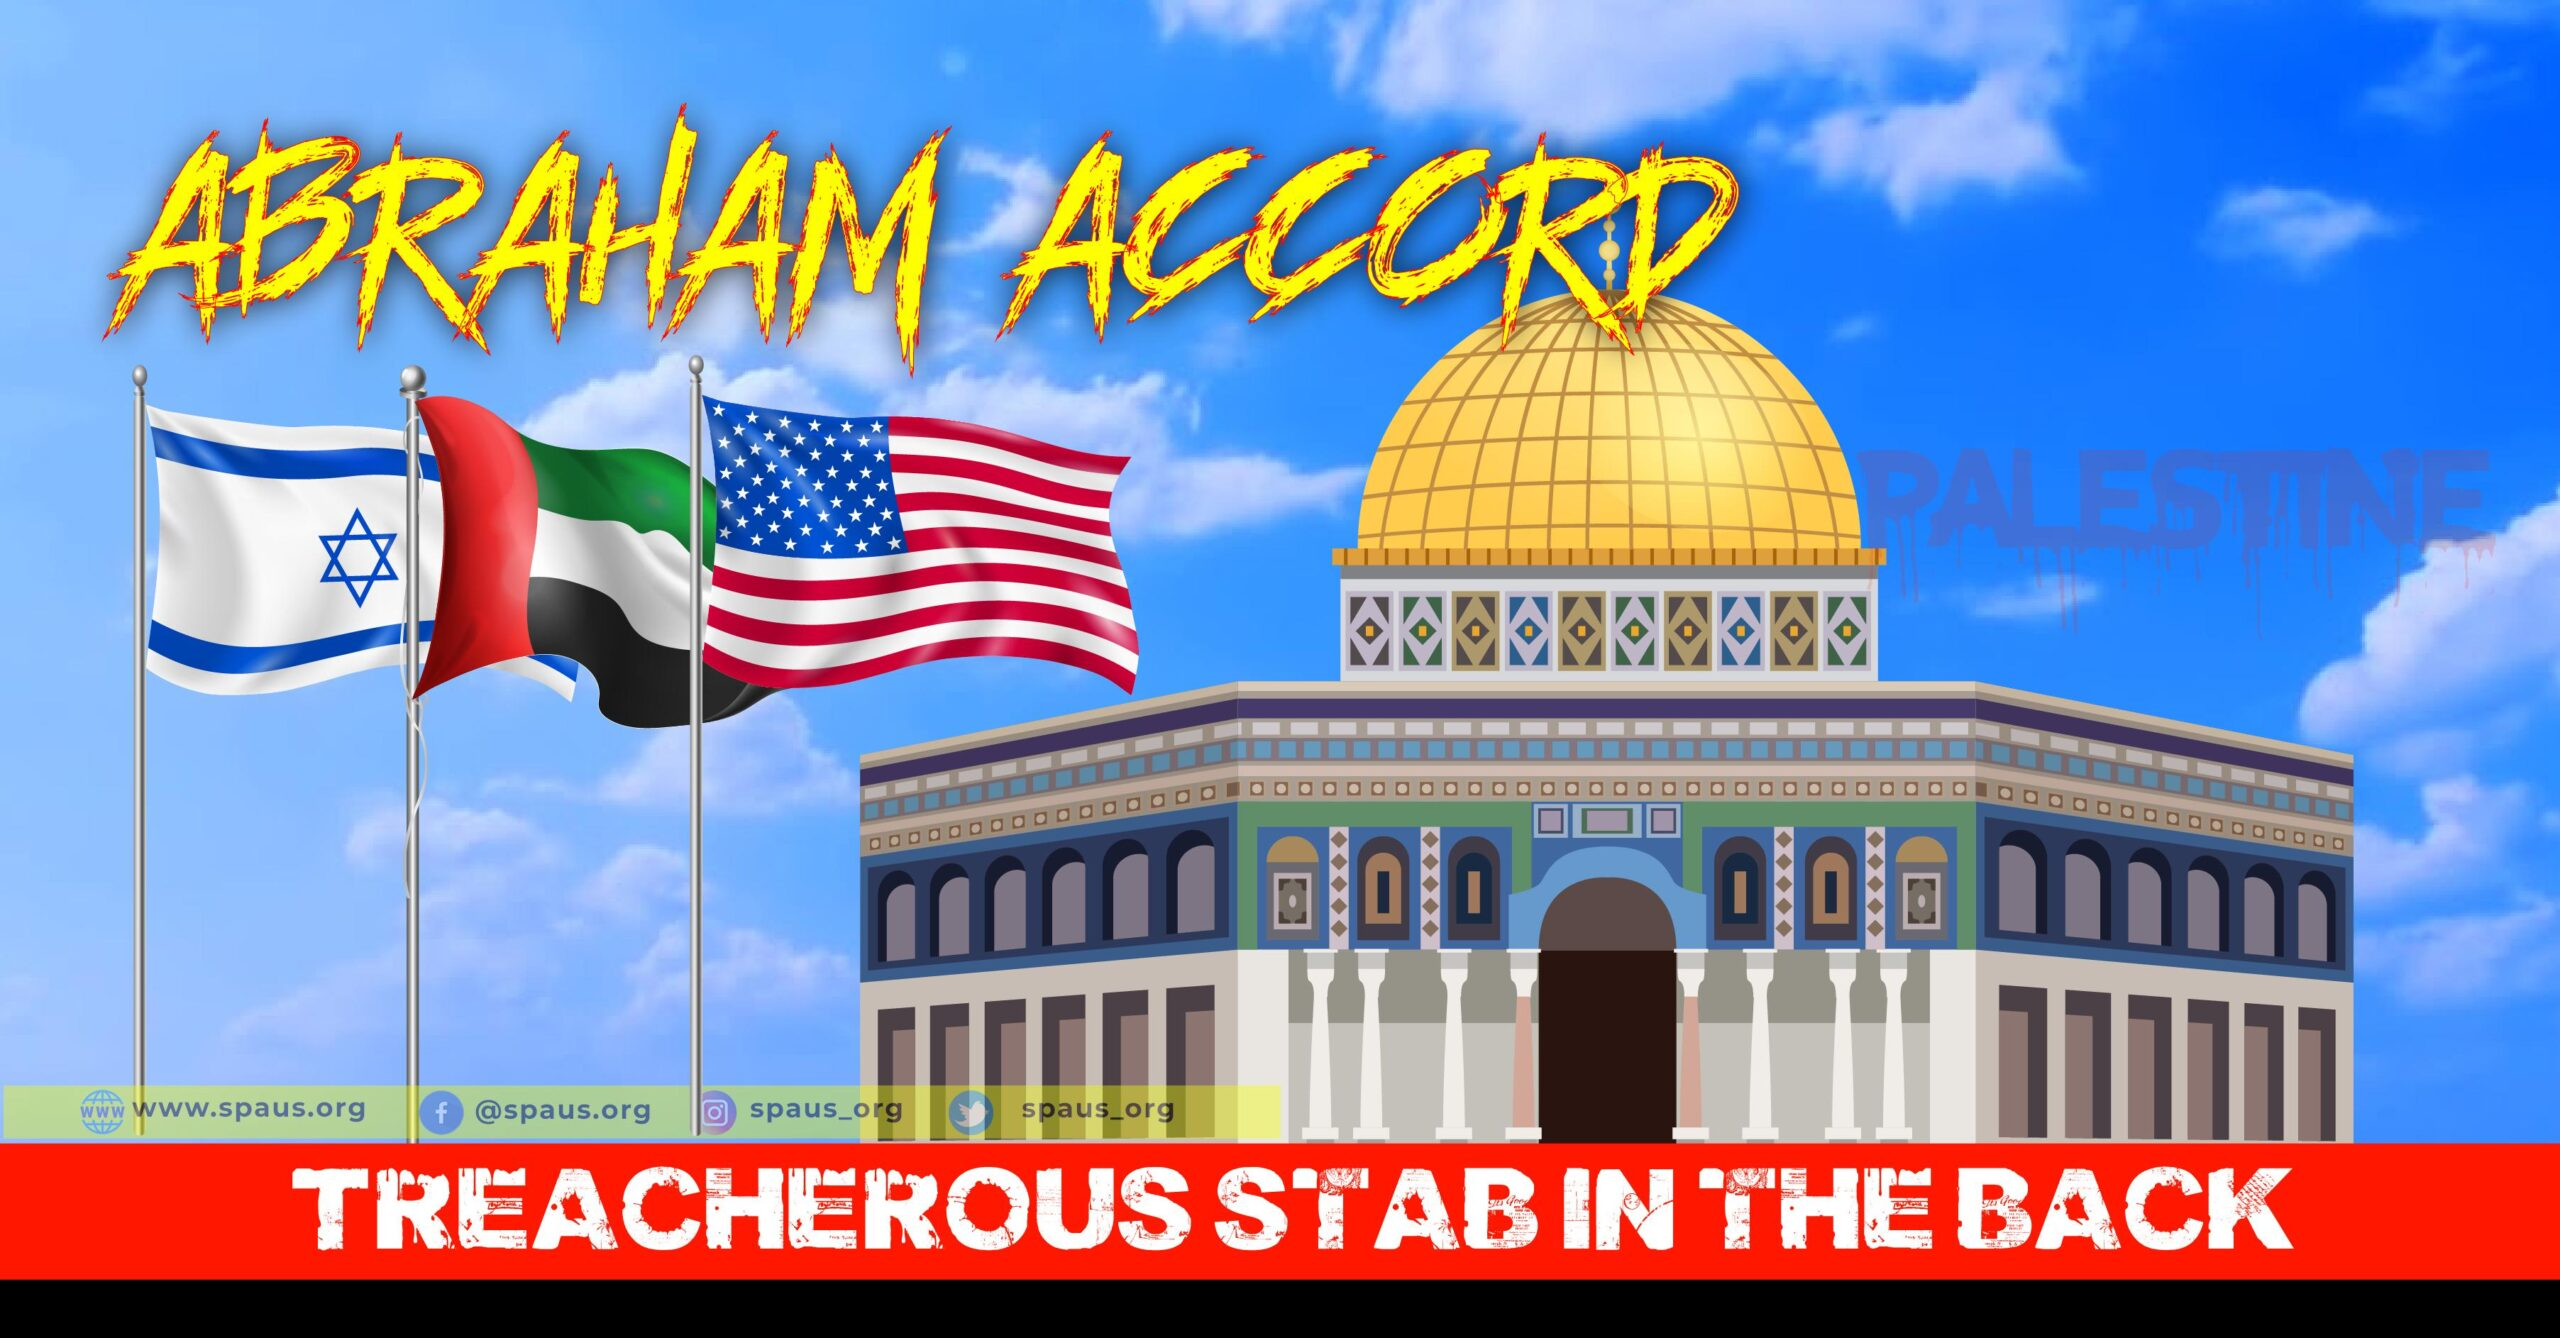 Abraham Accord: Stab in the Back